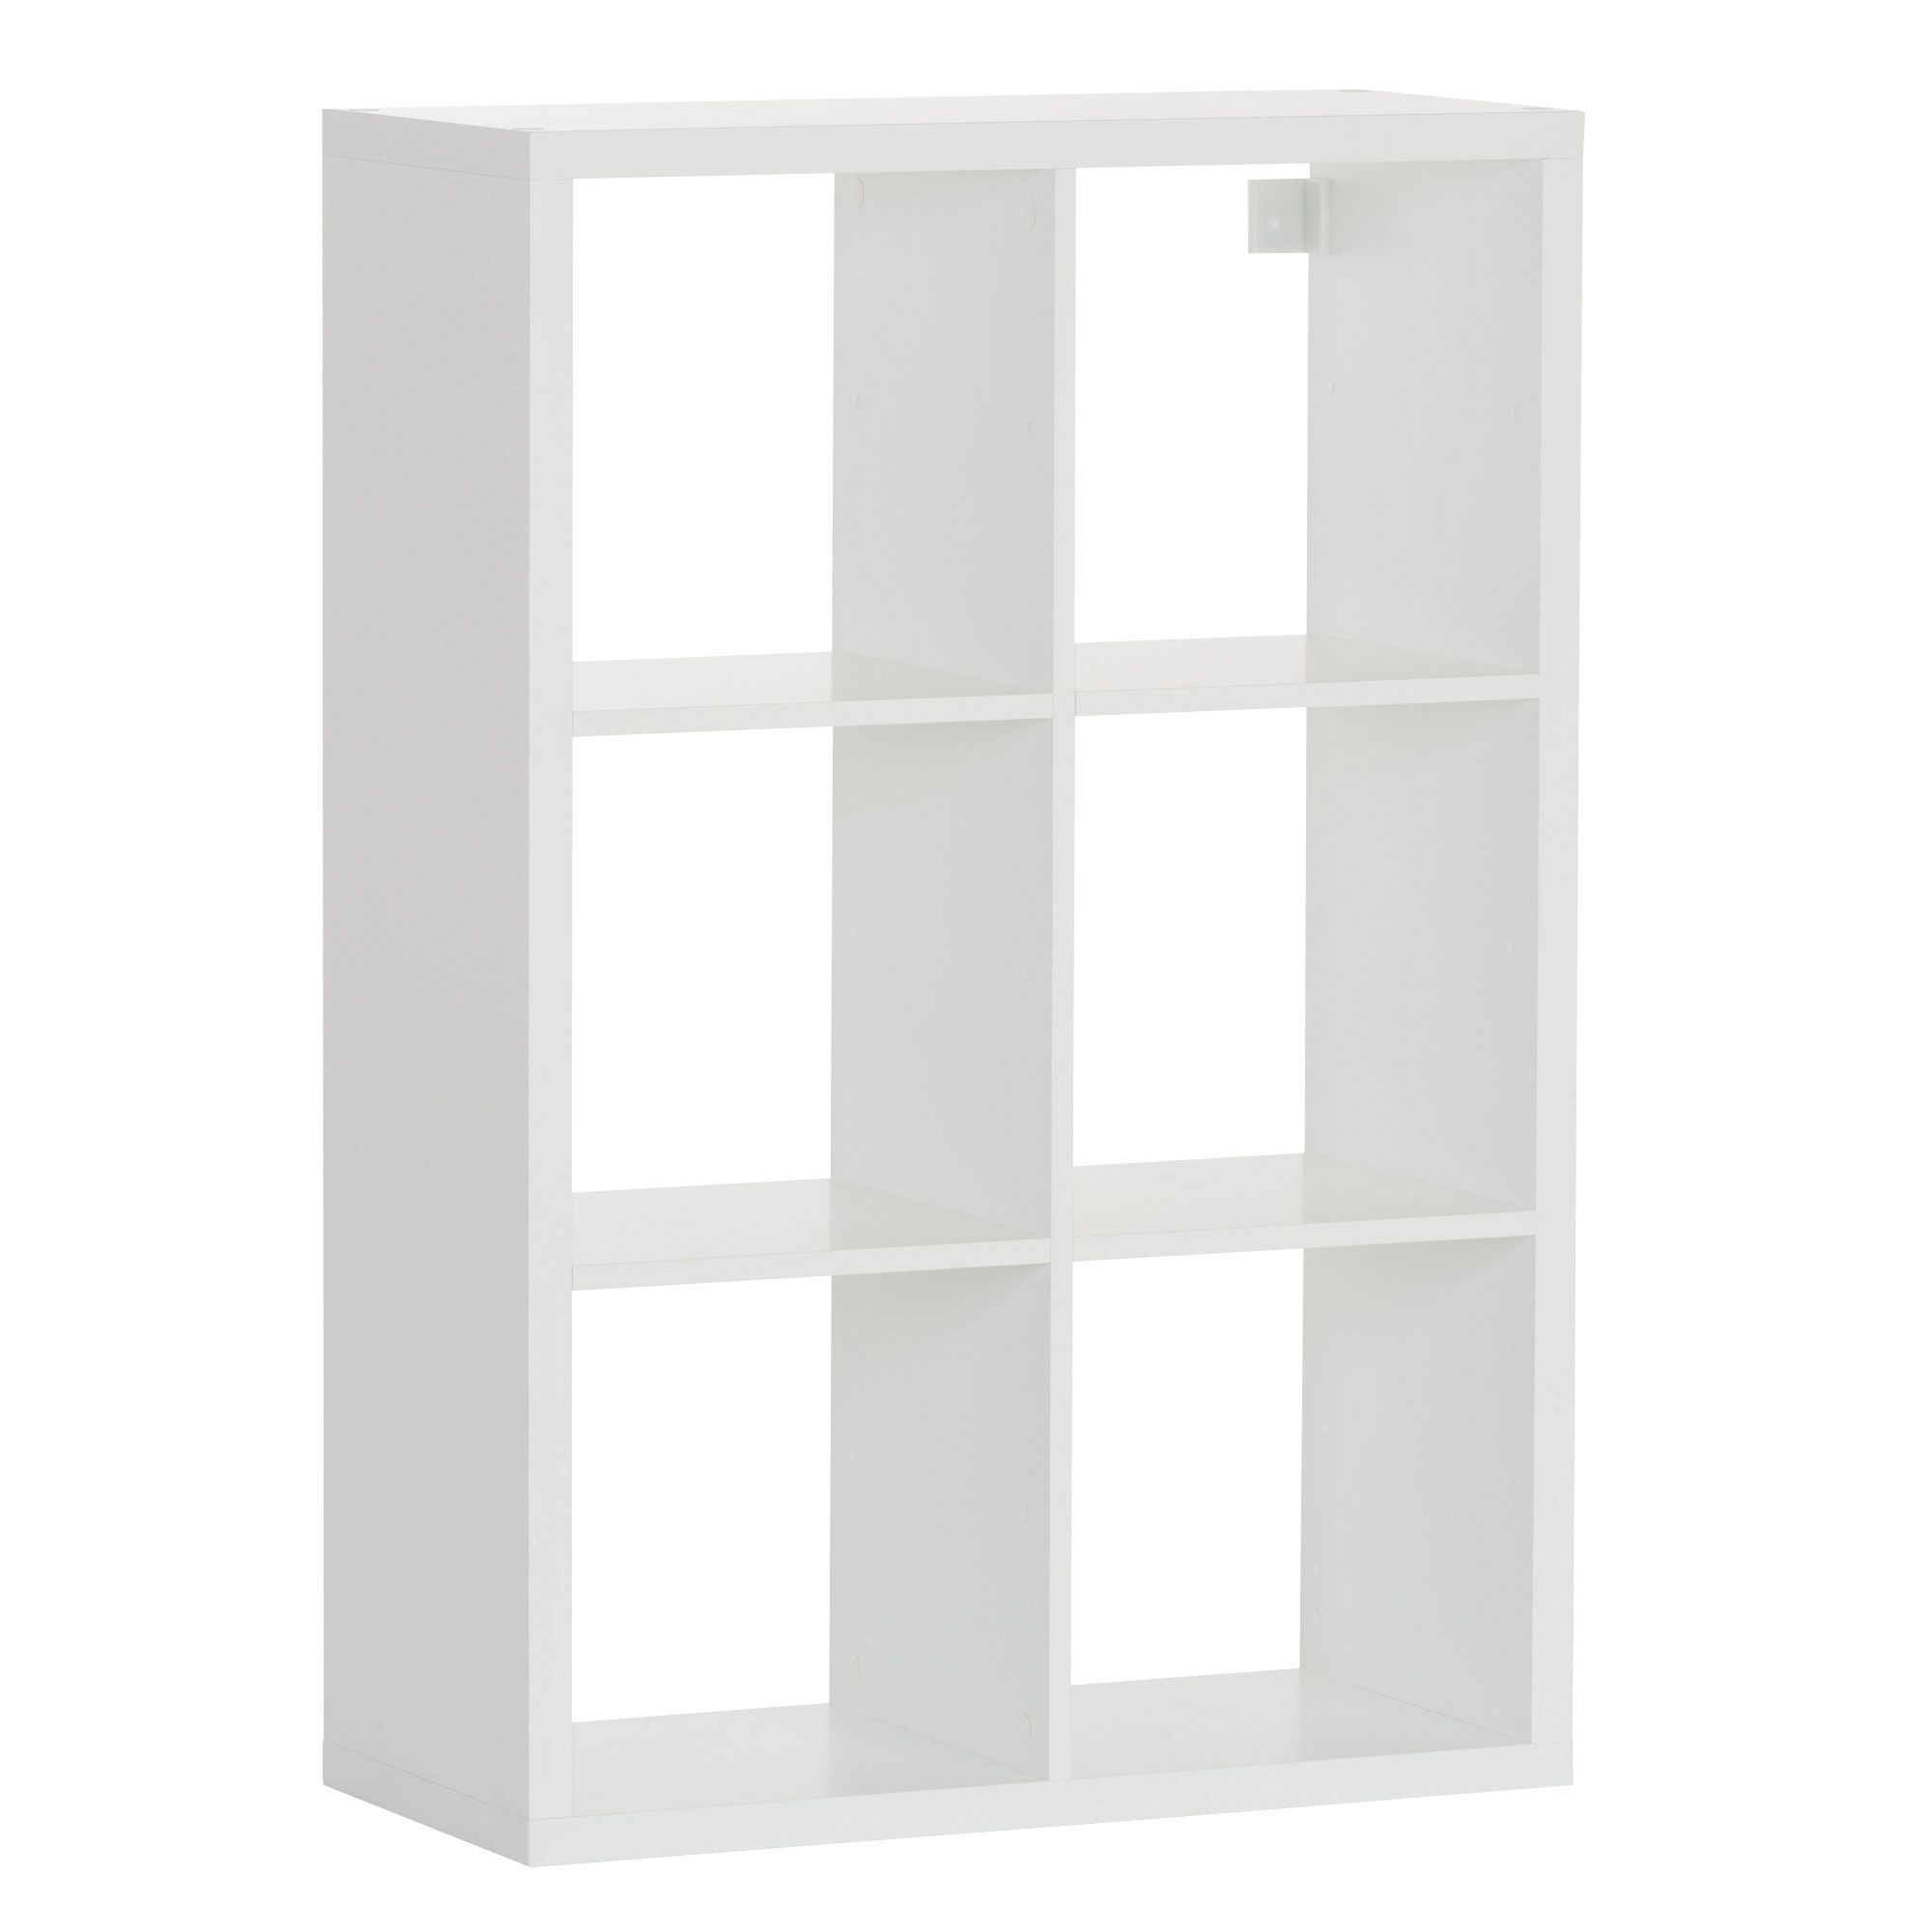 form mixxit white 6 cube shelving unit h 1080mm w 737mm. Black Bedroom Furniture Sets. Home Design Ideas